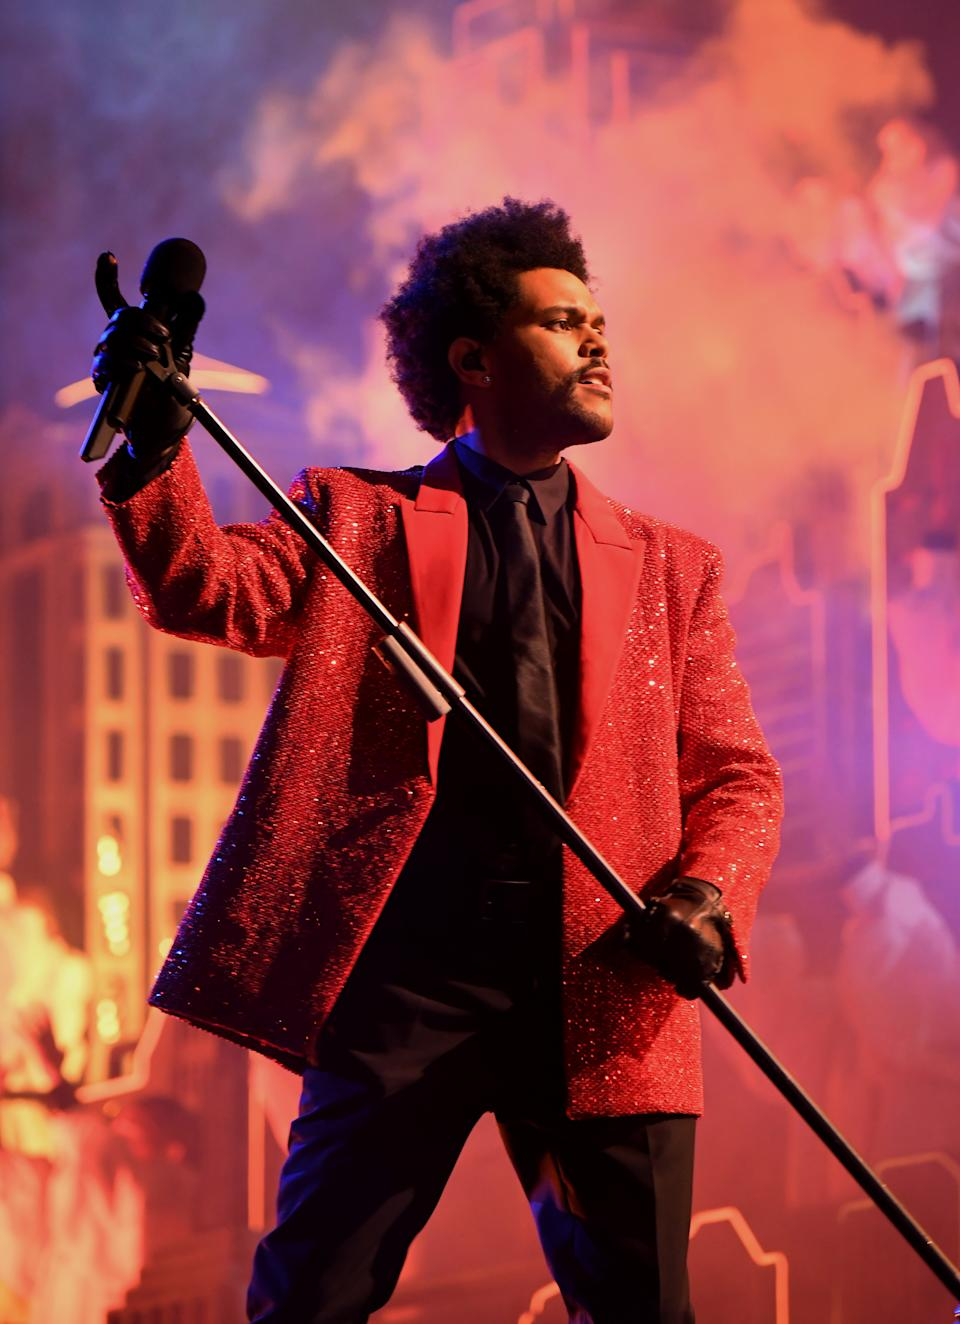 The Weeknd rehearses for the Super Bowl LV Halftime Show at Raymond James Stadium on February 04, 2021 in Tampa, Florida. (Photo by Kevin Mazur/Getty Images for TW)